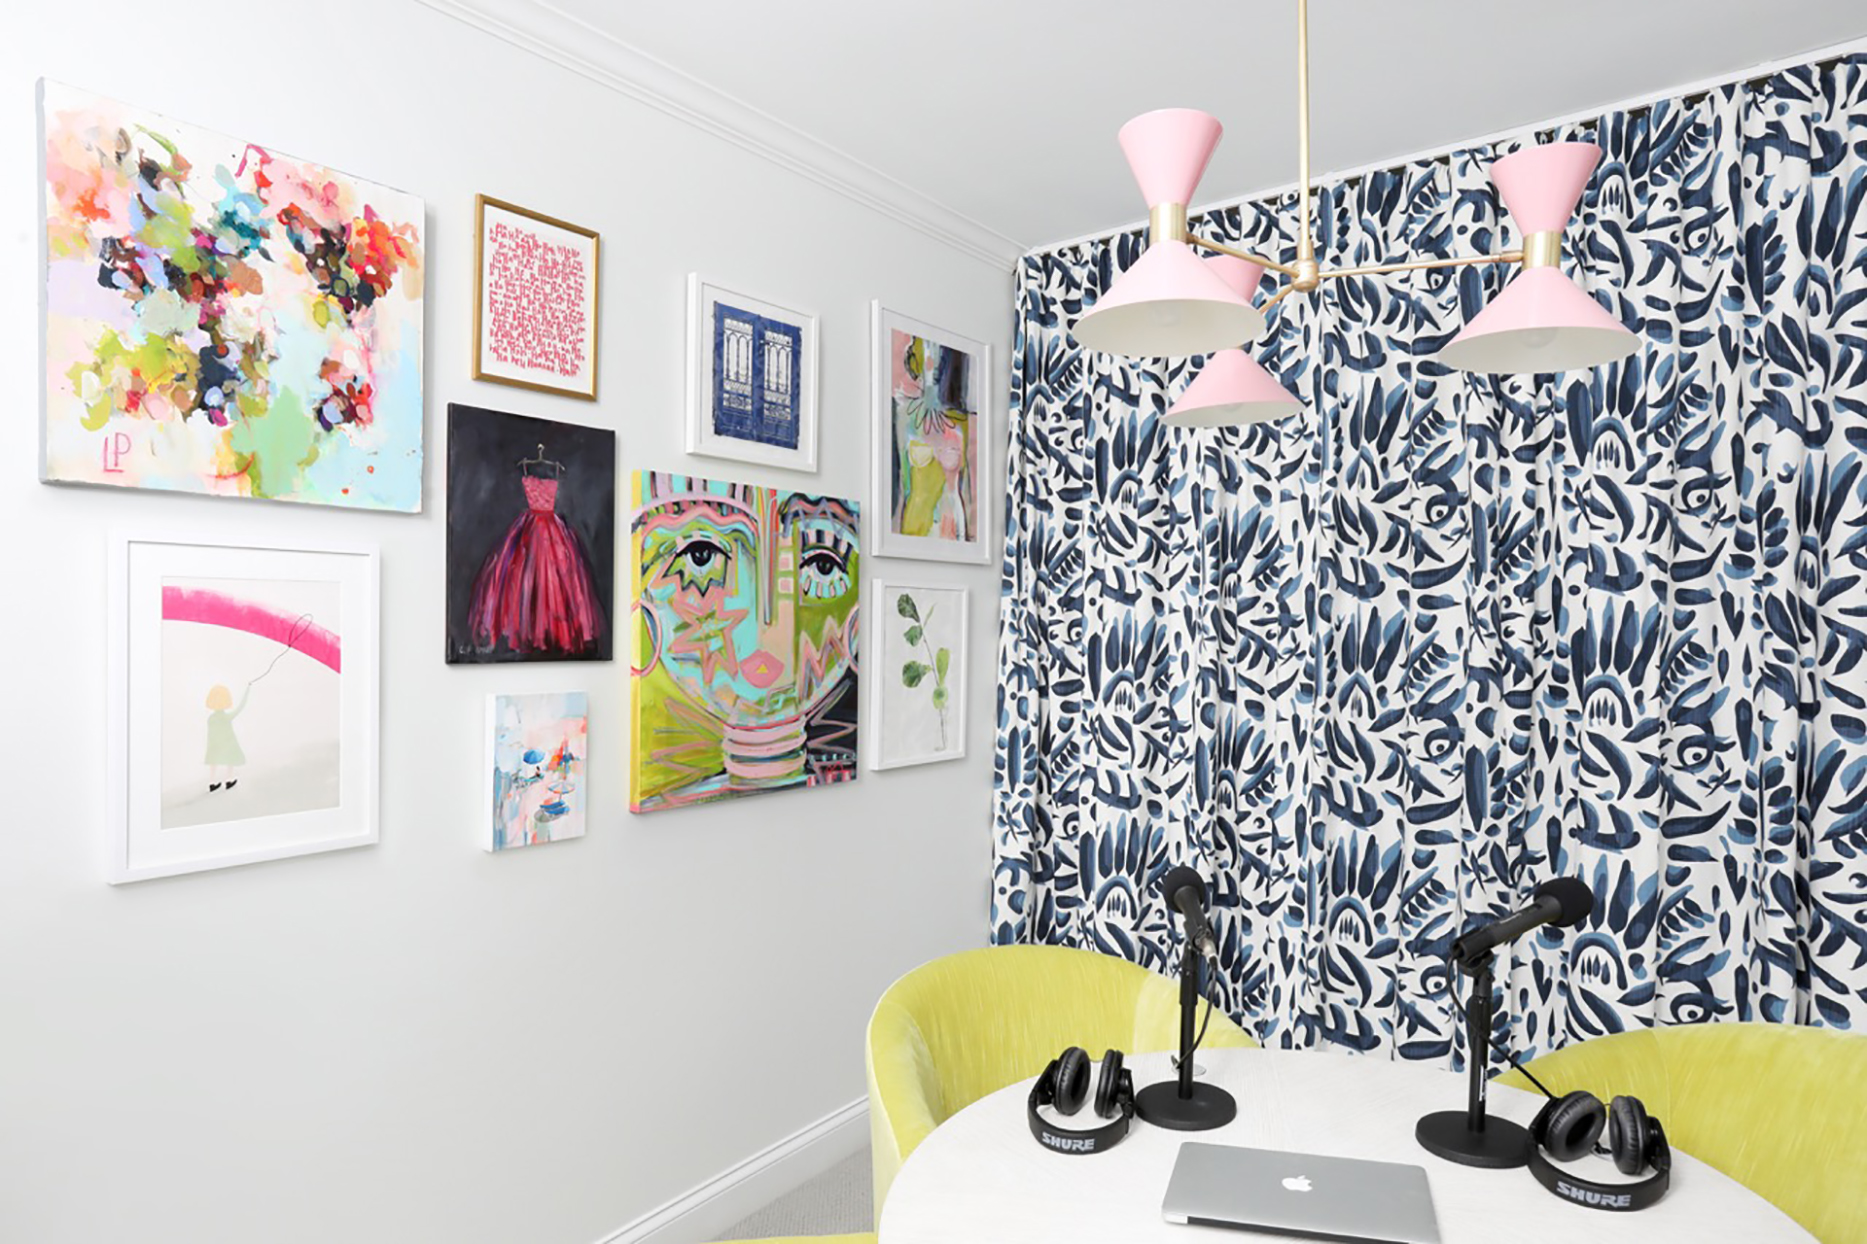 podcast studio with colorful gallery wall and patterned wallpaper